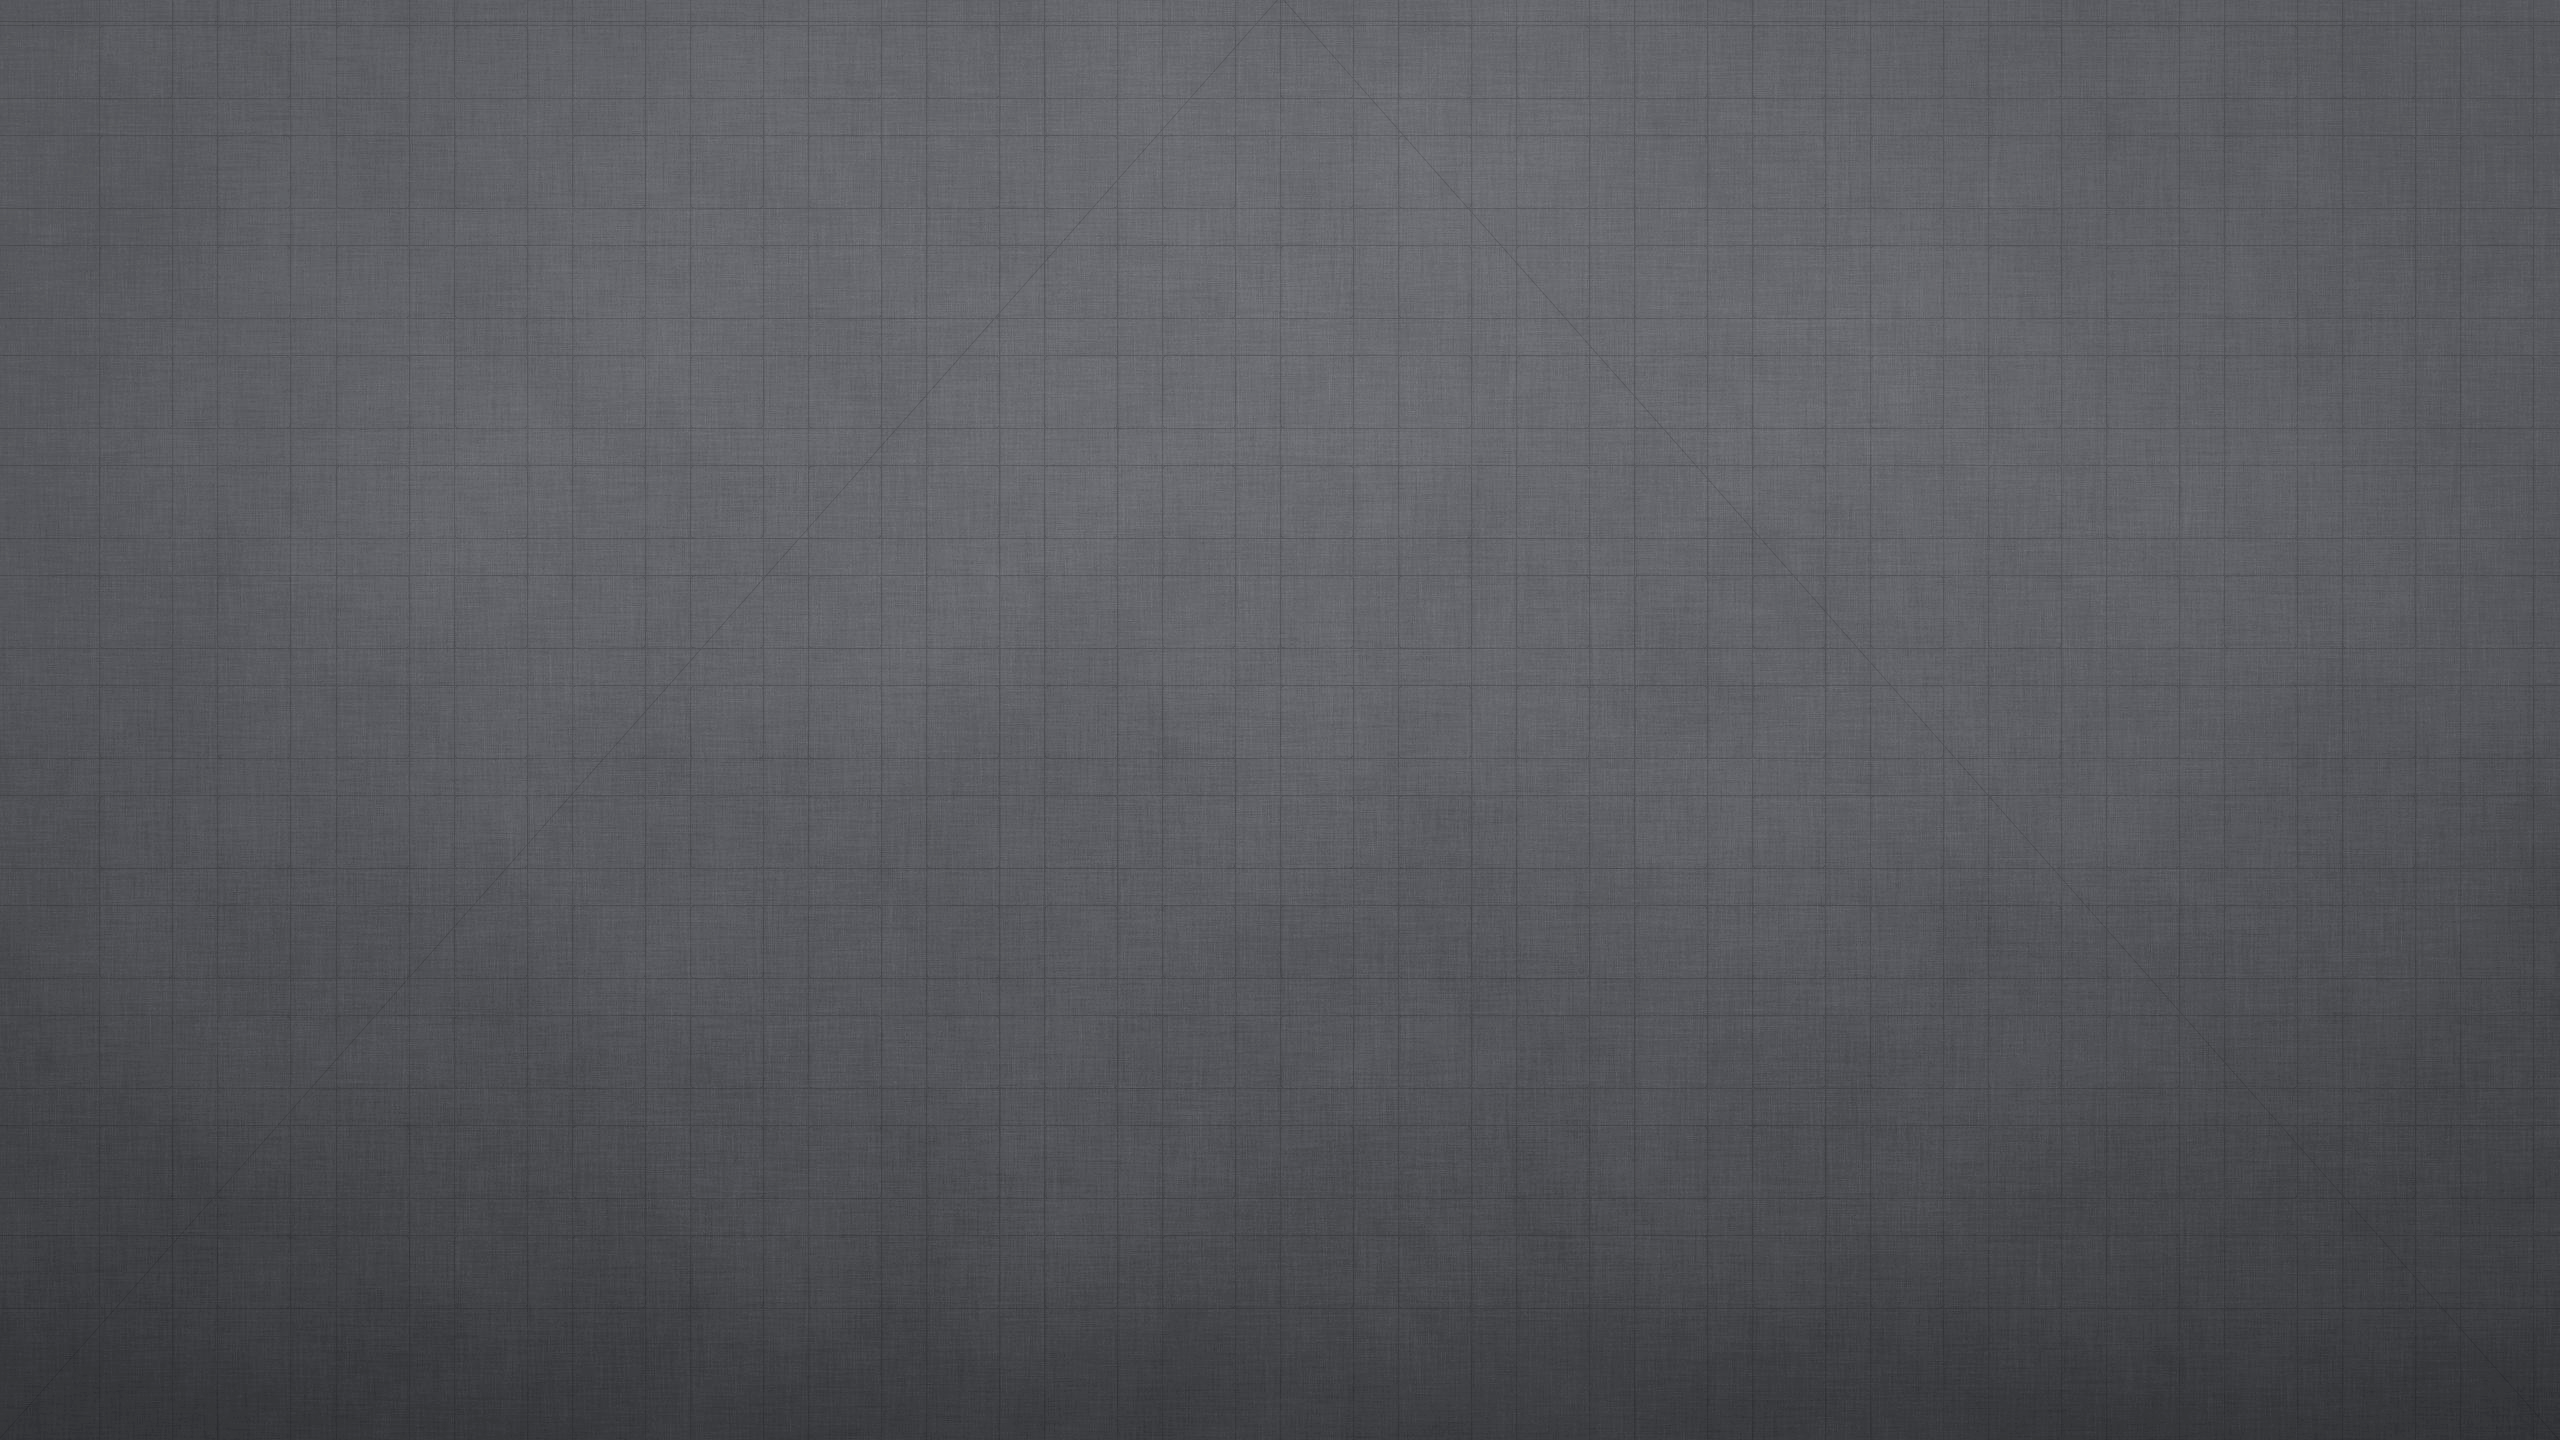 2560 x 1440 Mac OSX Lion Mission Control Grid Wallpaper Actual size 2560x1440